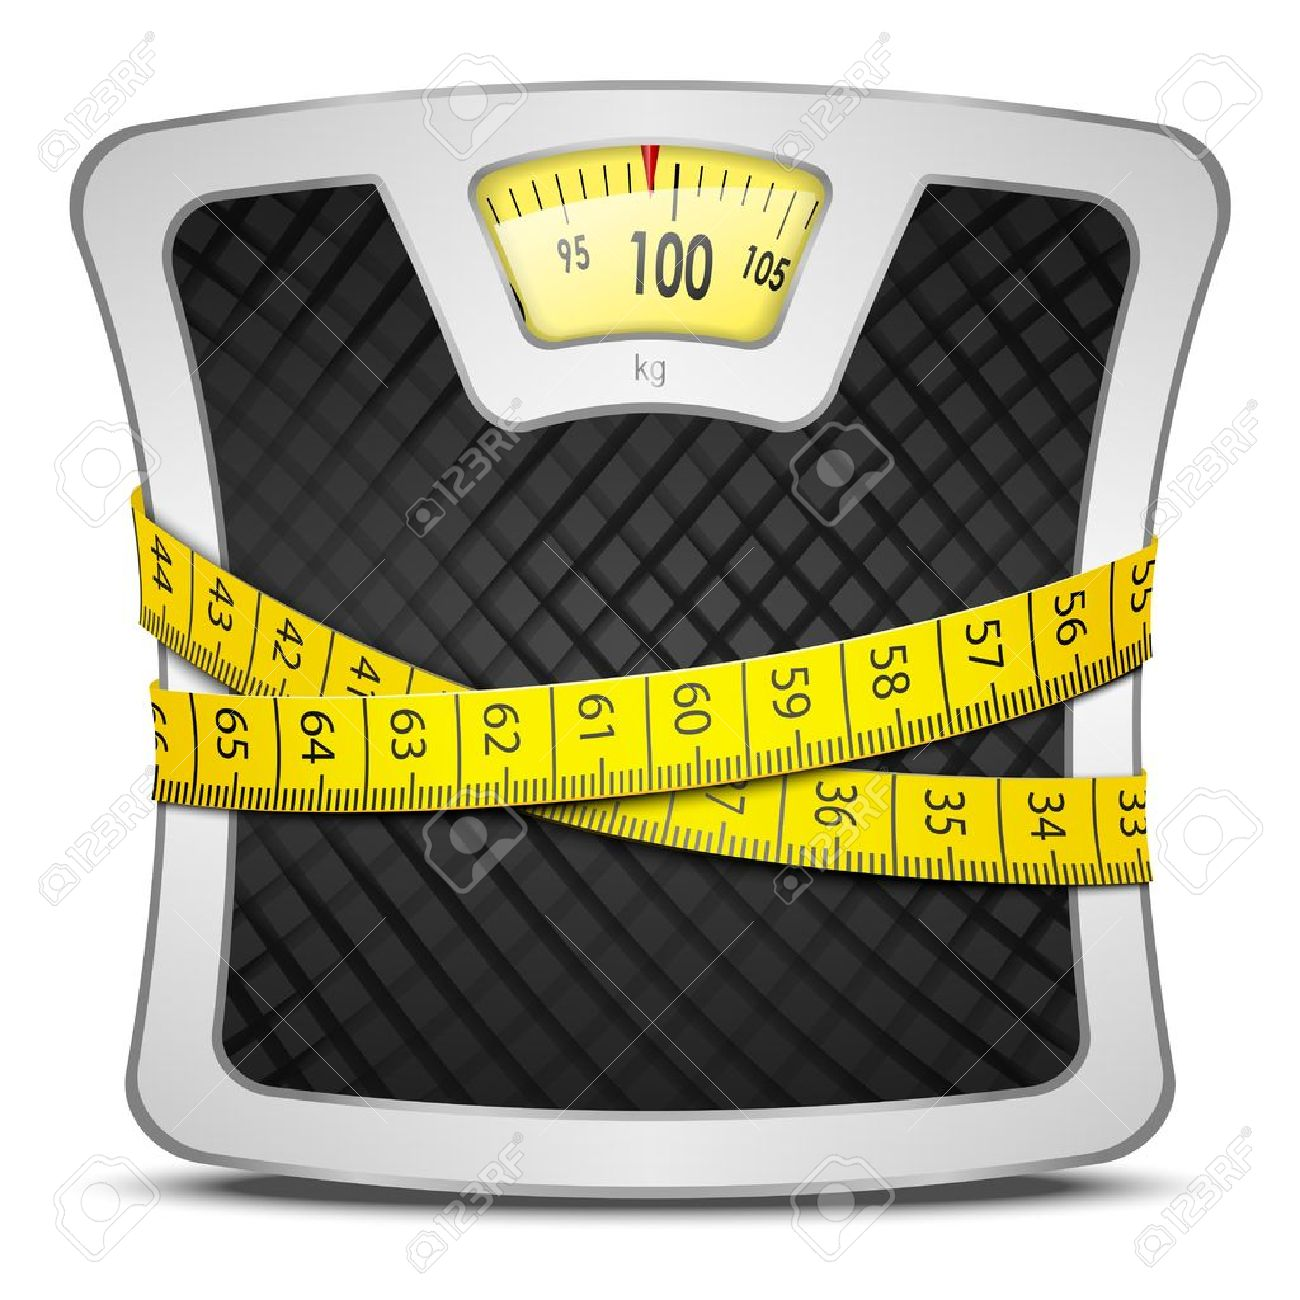 7 days weight loss program image 4